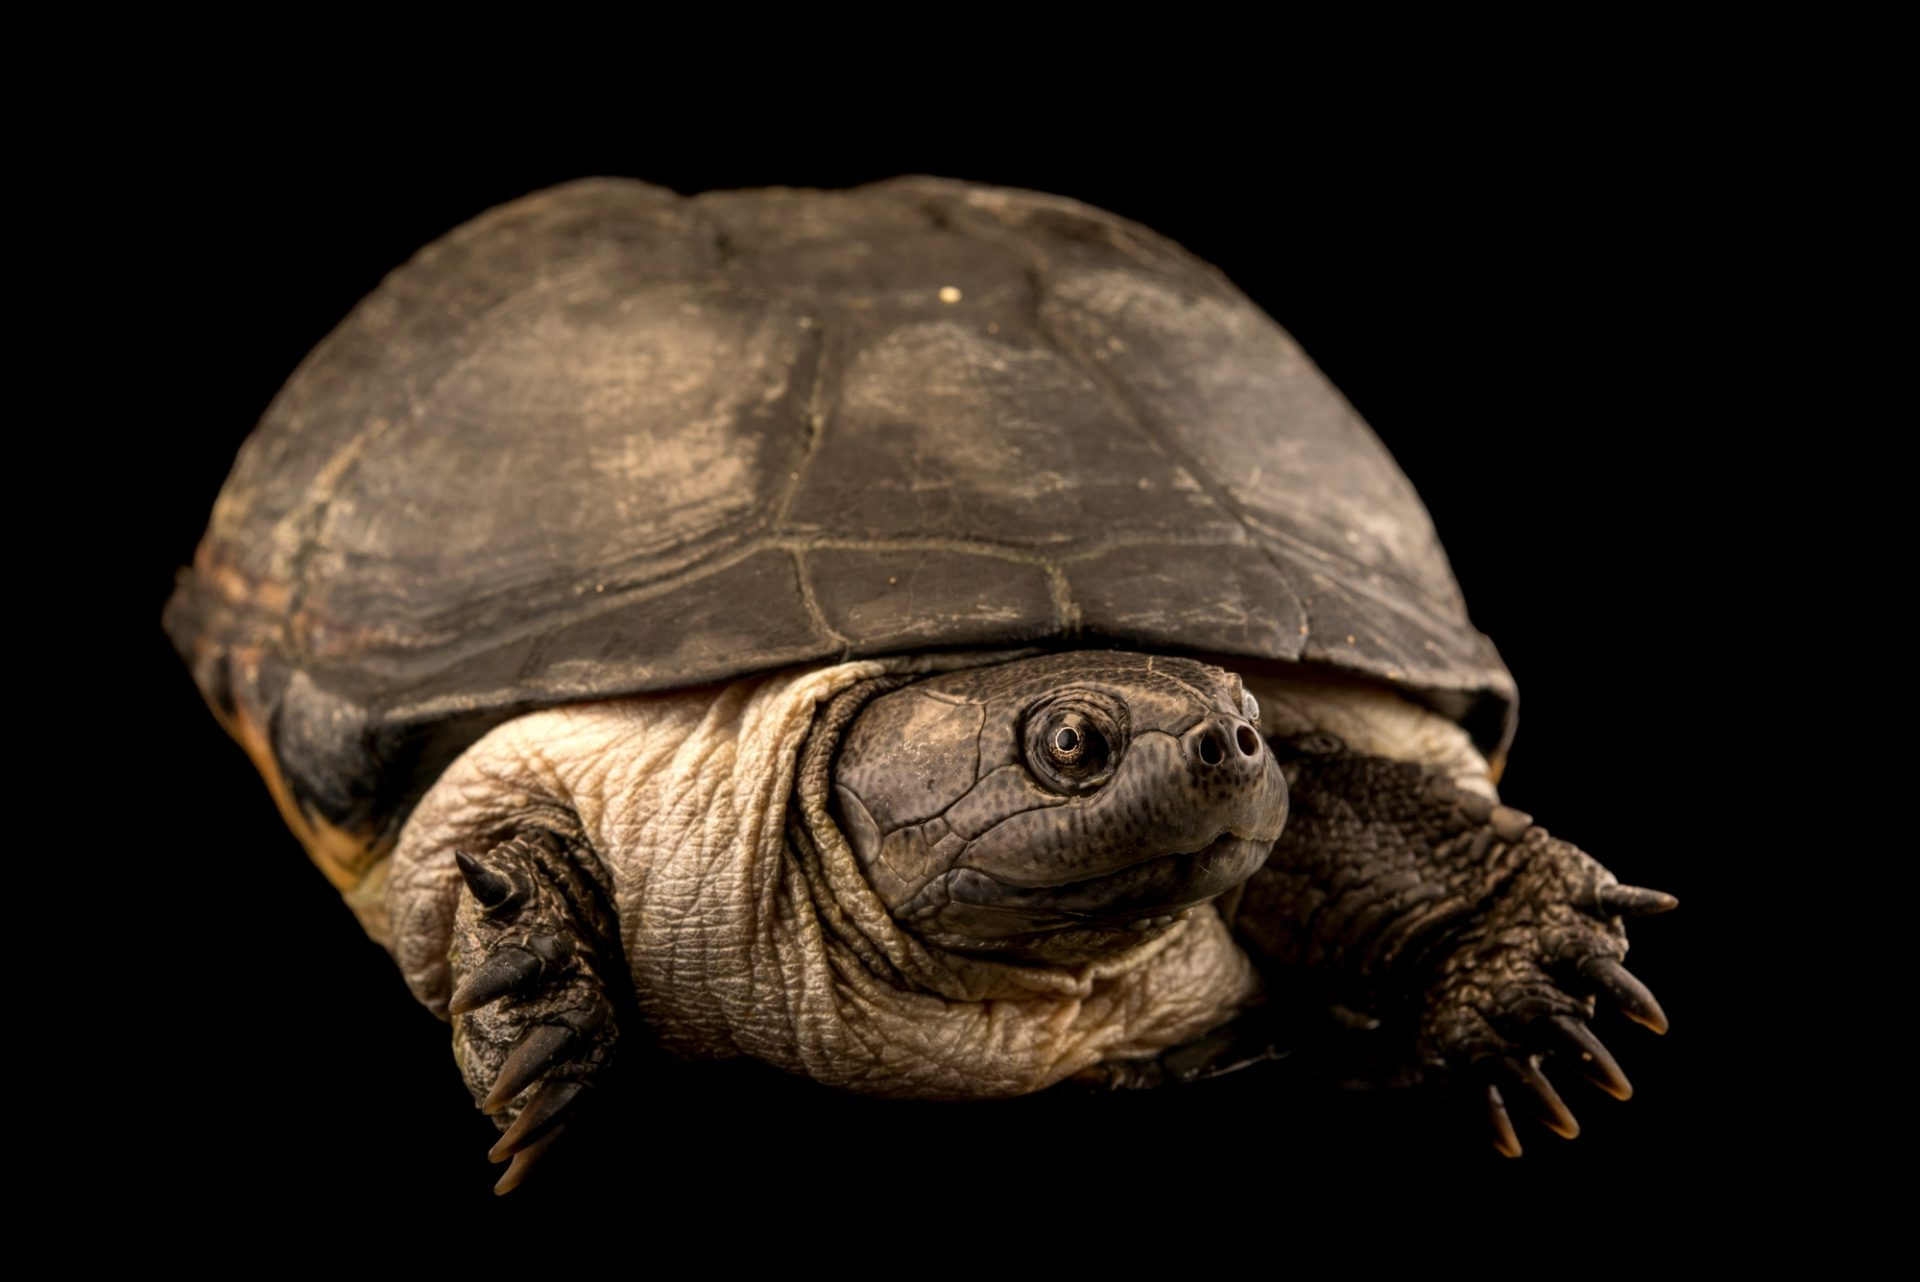 Photo: Adanson's mud turtle (Pelusios adansonii) at Lisbon Zoo.